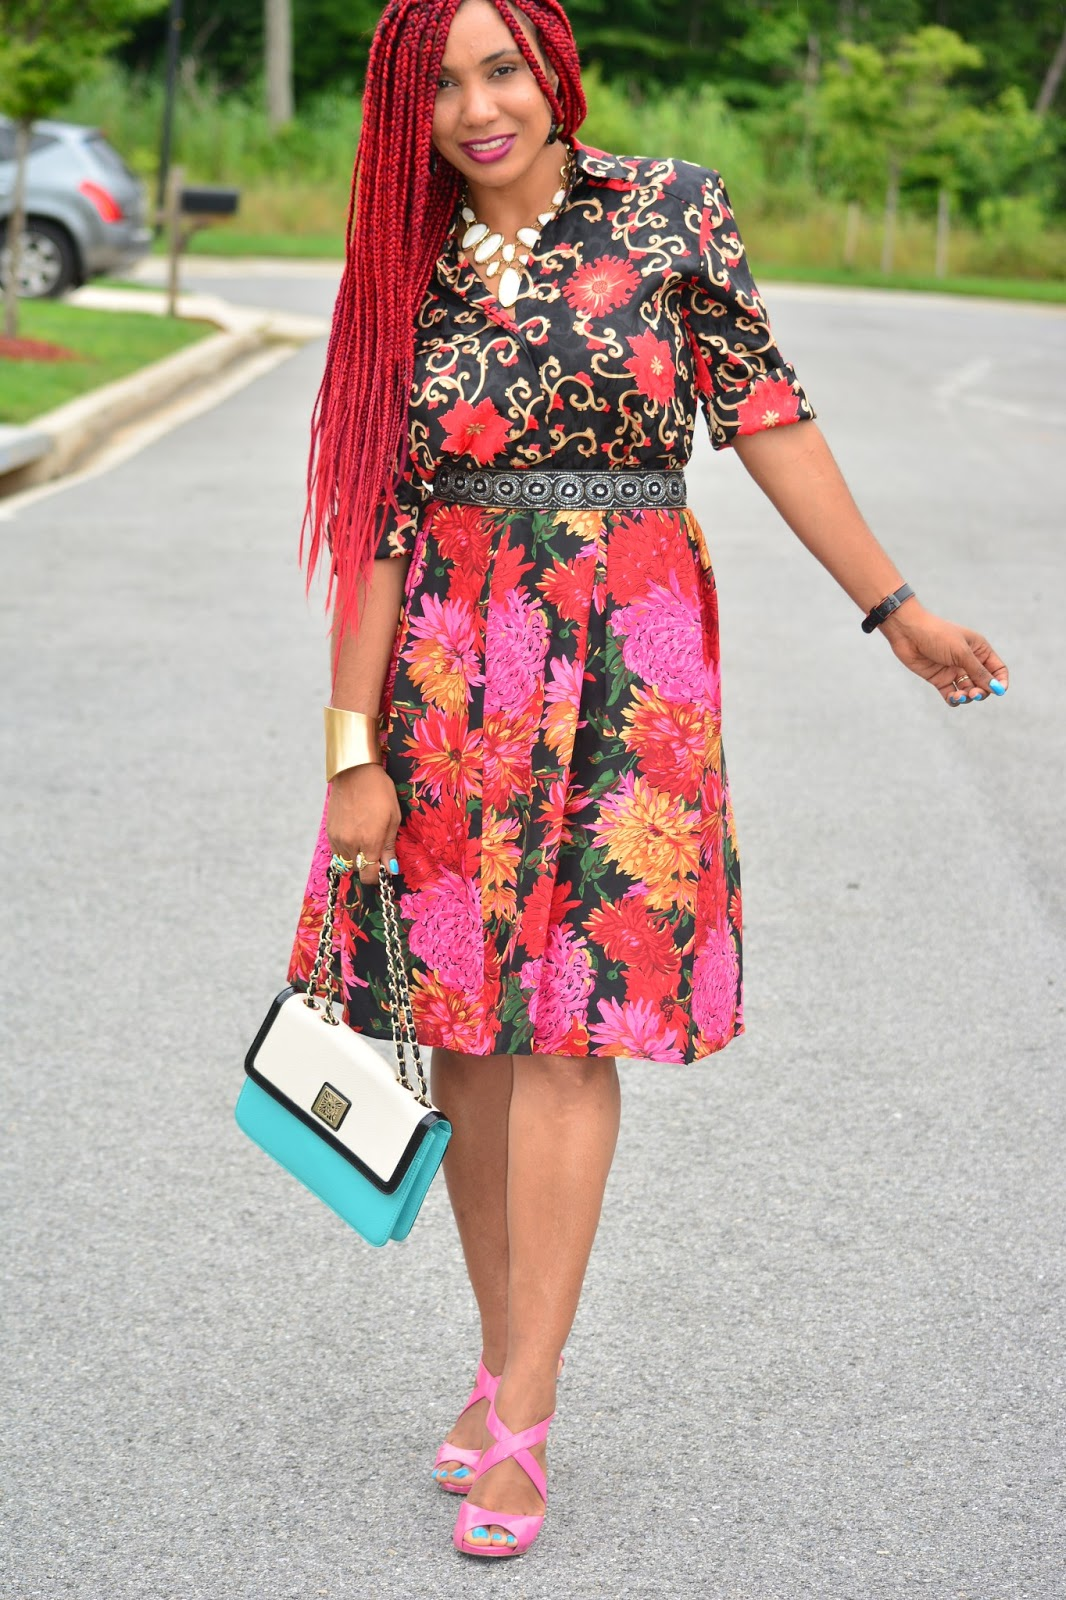 skirt styles for 2013 milly styles floral top floral skirt